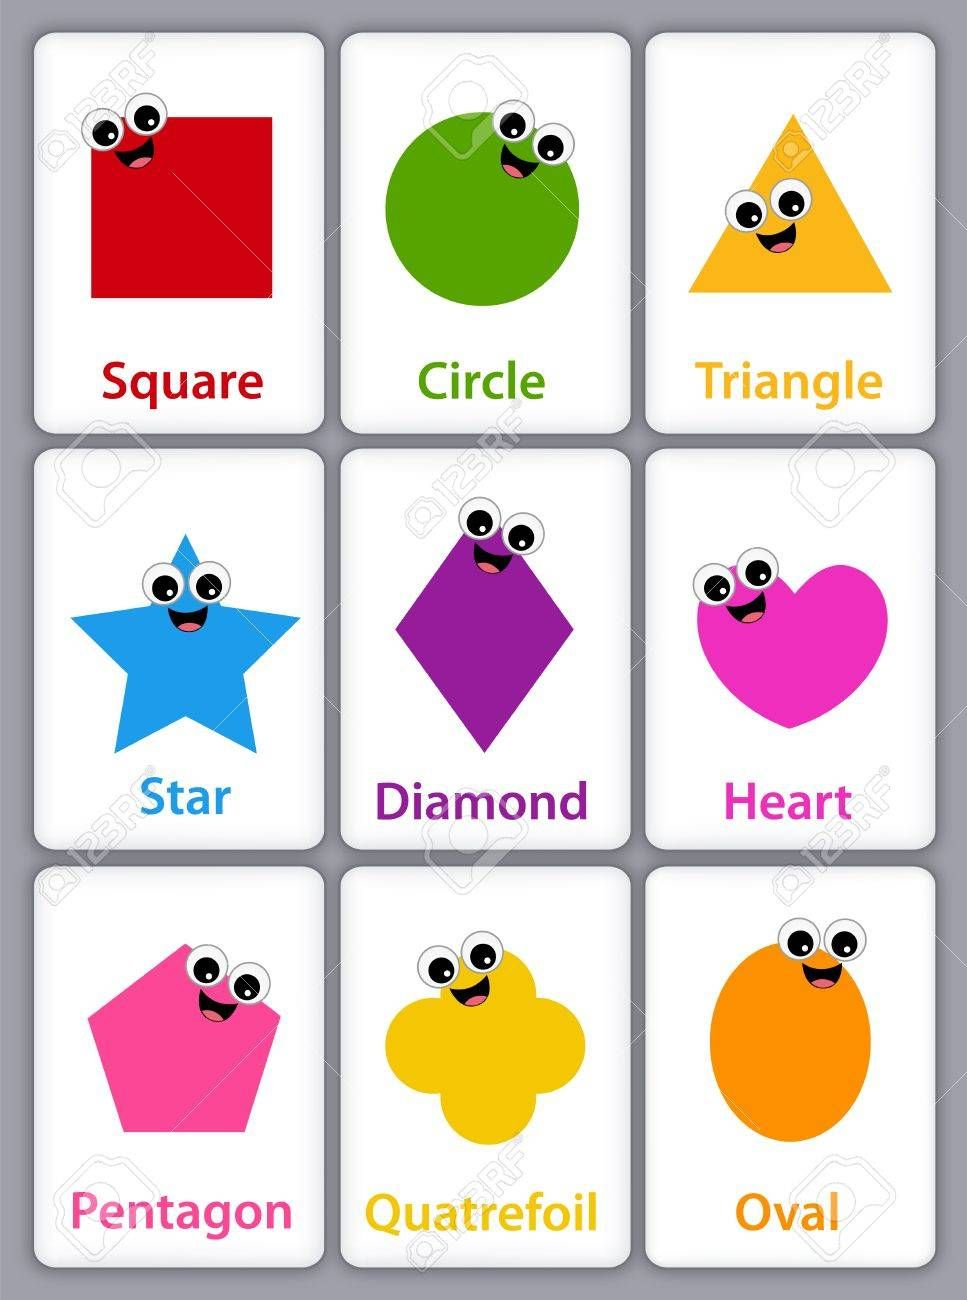 Image result for BASIC SHAPES WITH NAME clipart.